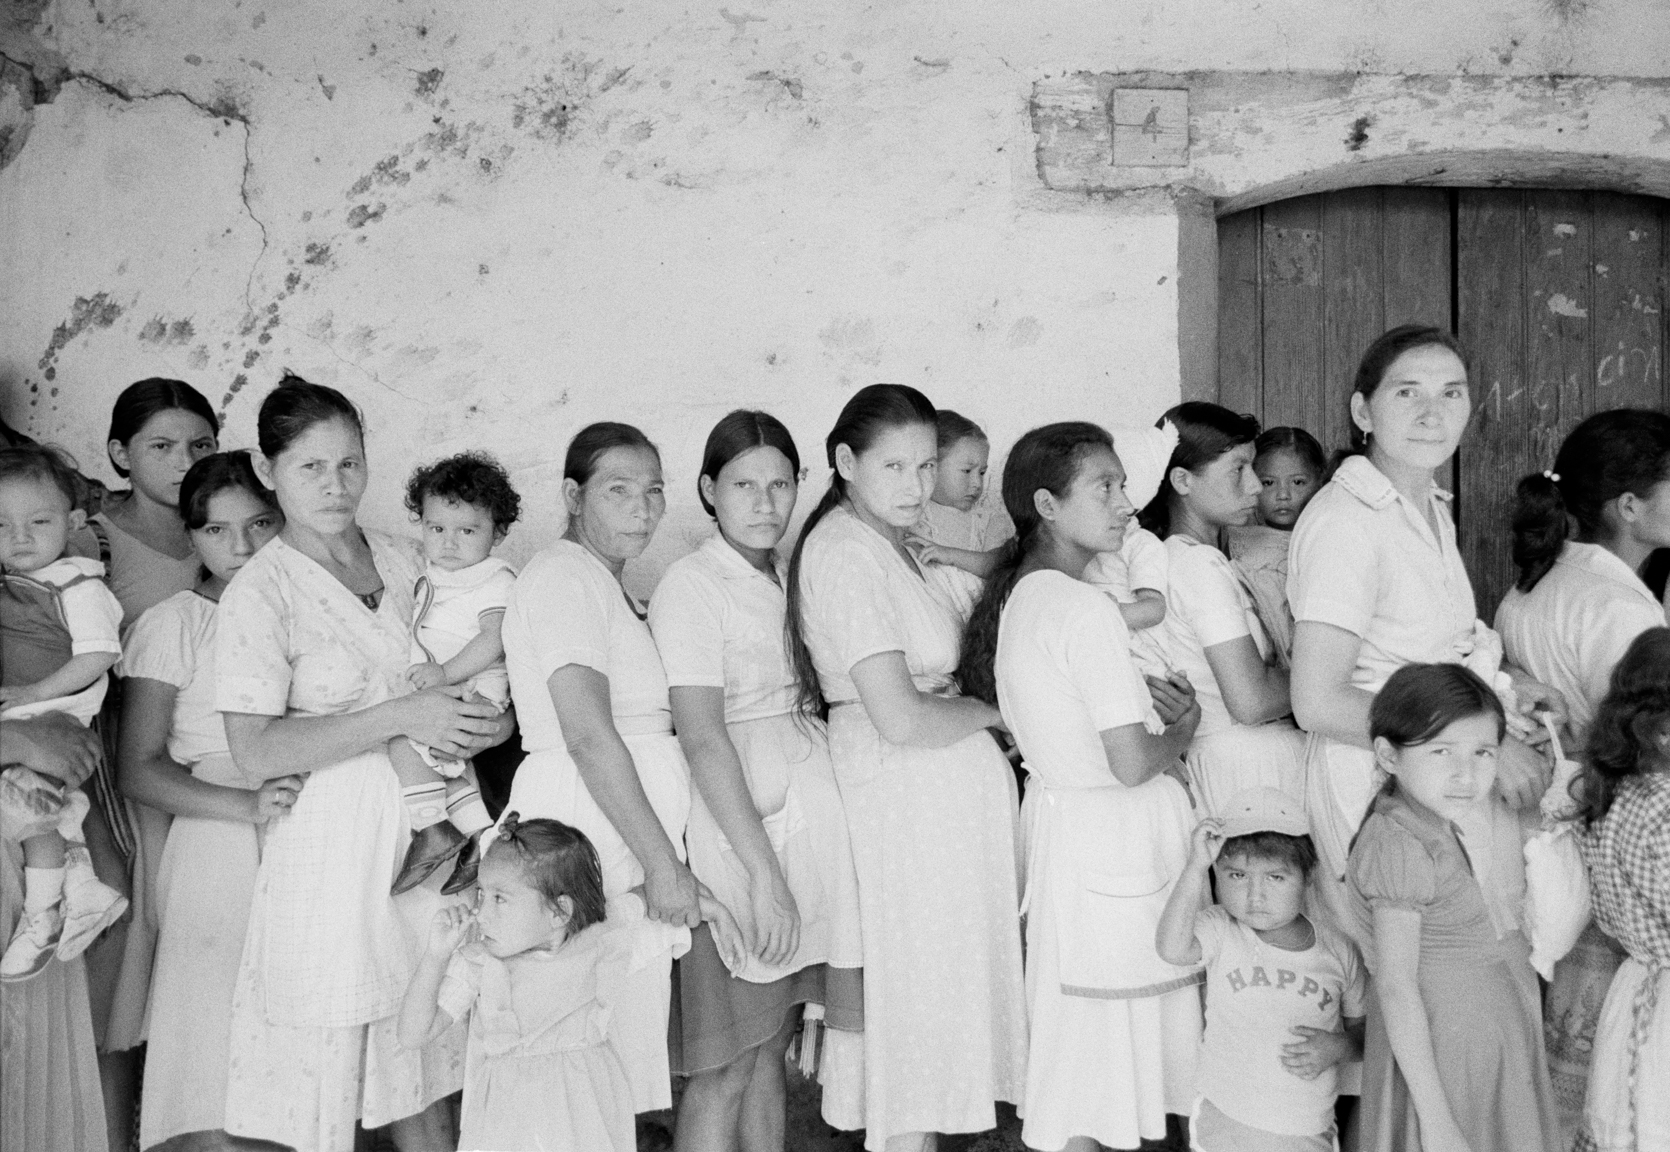 Women line up for medical care at a military clinic October 23, 1983 in Perquin, Morazán department, El Salvador. The Salvadoran government abandoned Perquin and several towns in Morazán department when the territory fell under the control of the FMLN.